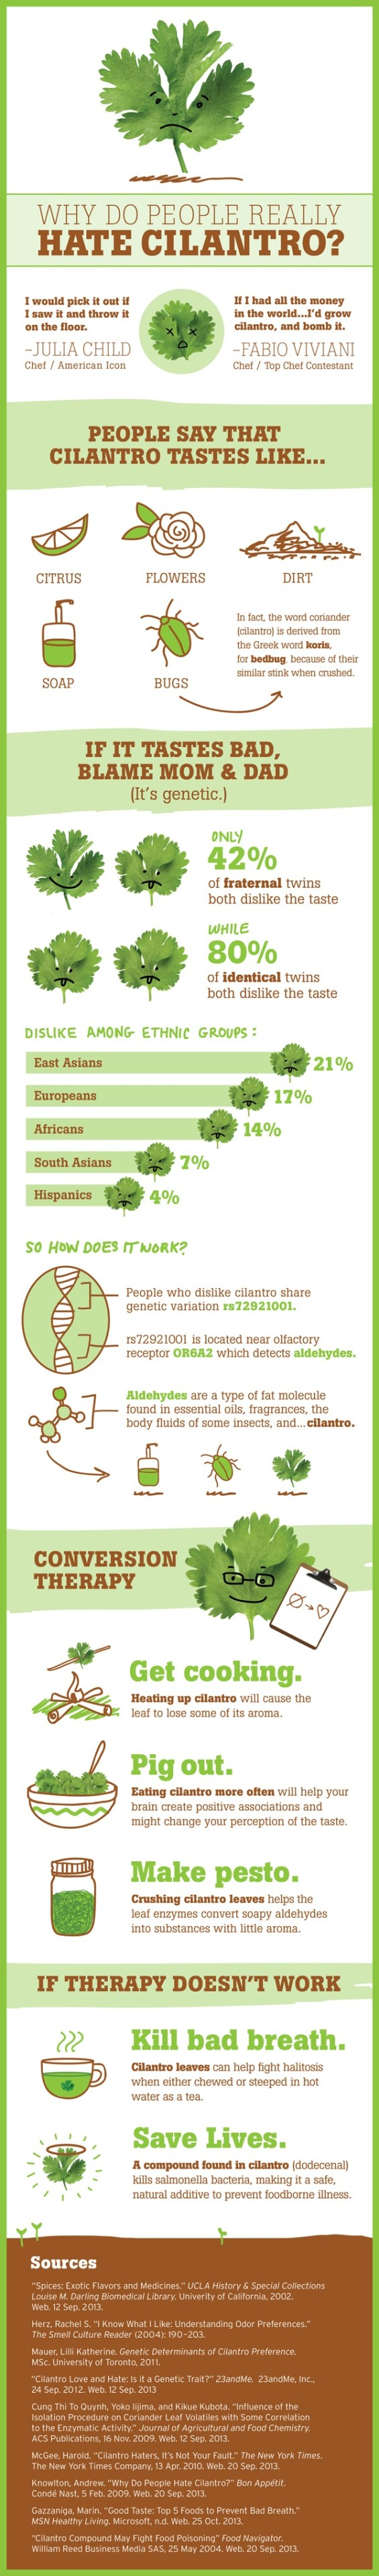 Why People Hate Cilantro Infographic